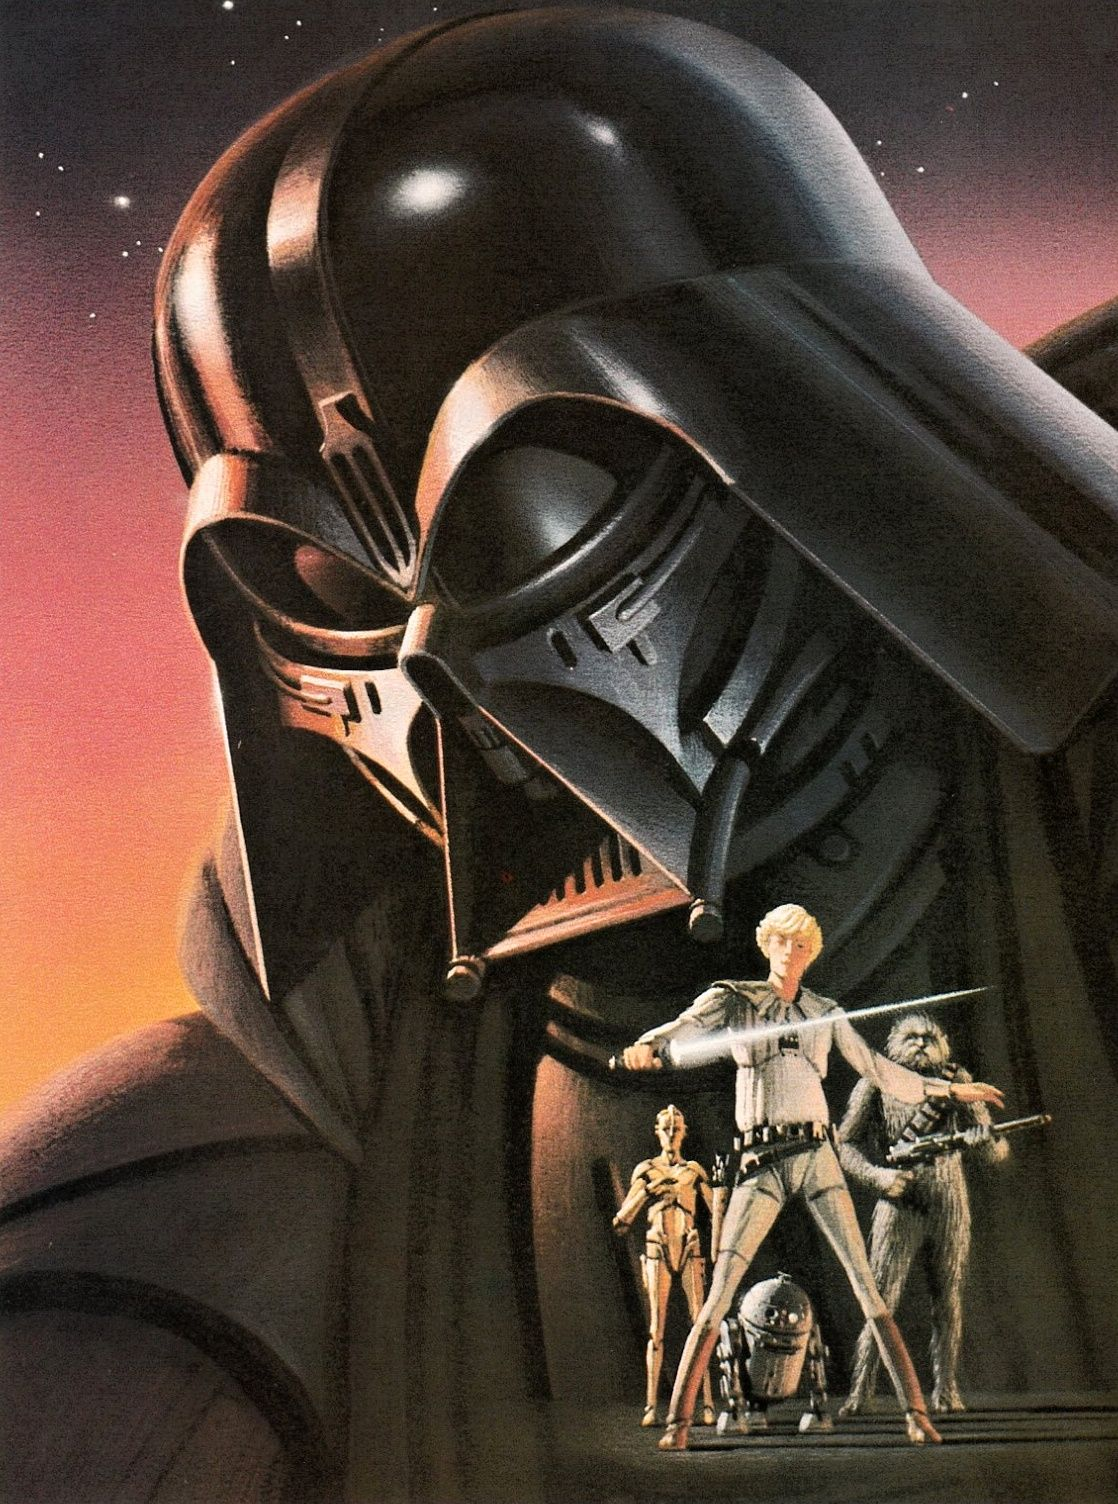 Star Wars 1977 Ralph Mcquarrie With Images Star Wars